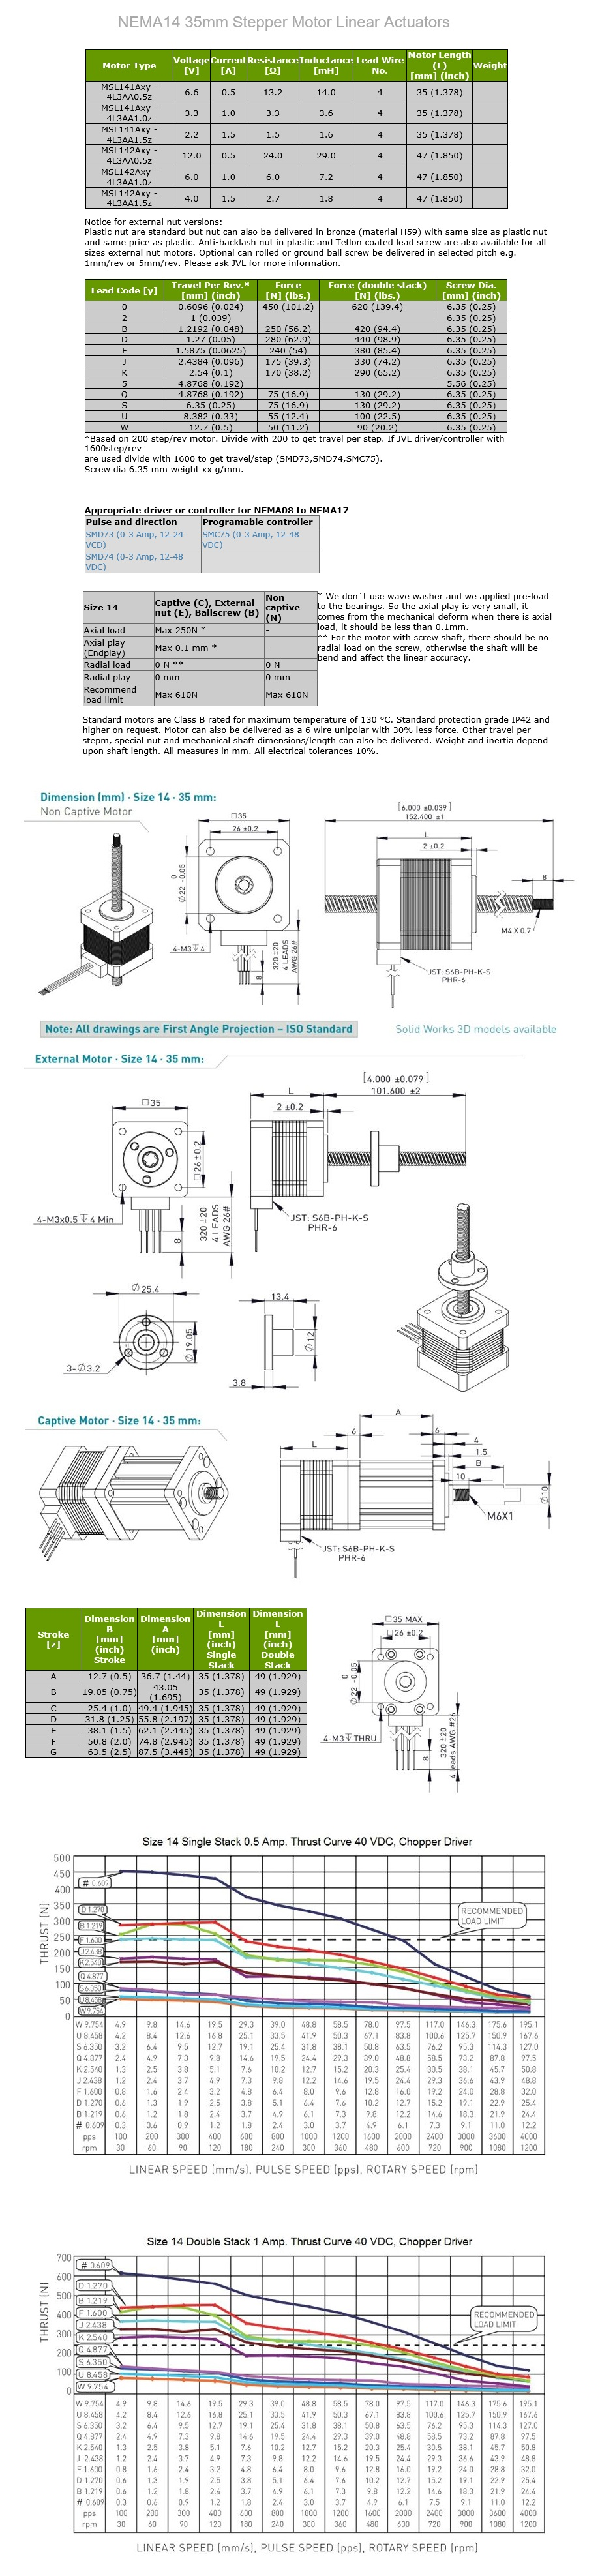 Jvl Integrated Stepper Motor With Linear Actuator Msl Series Schematic Model No Msl341axy 4l3aa13z 4l3aa30z Msl341bxy 4l3aa55z